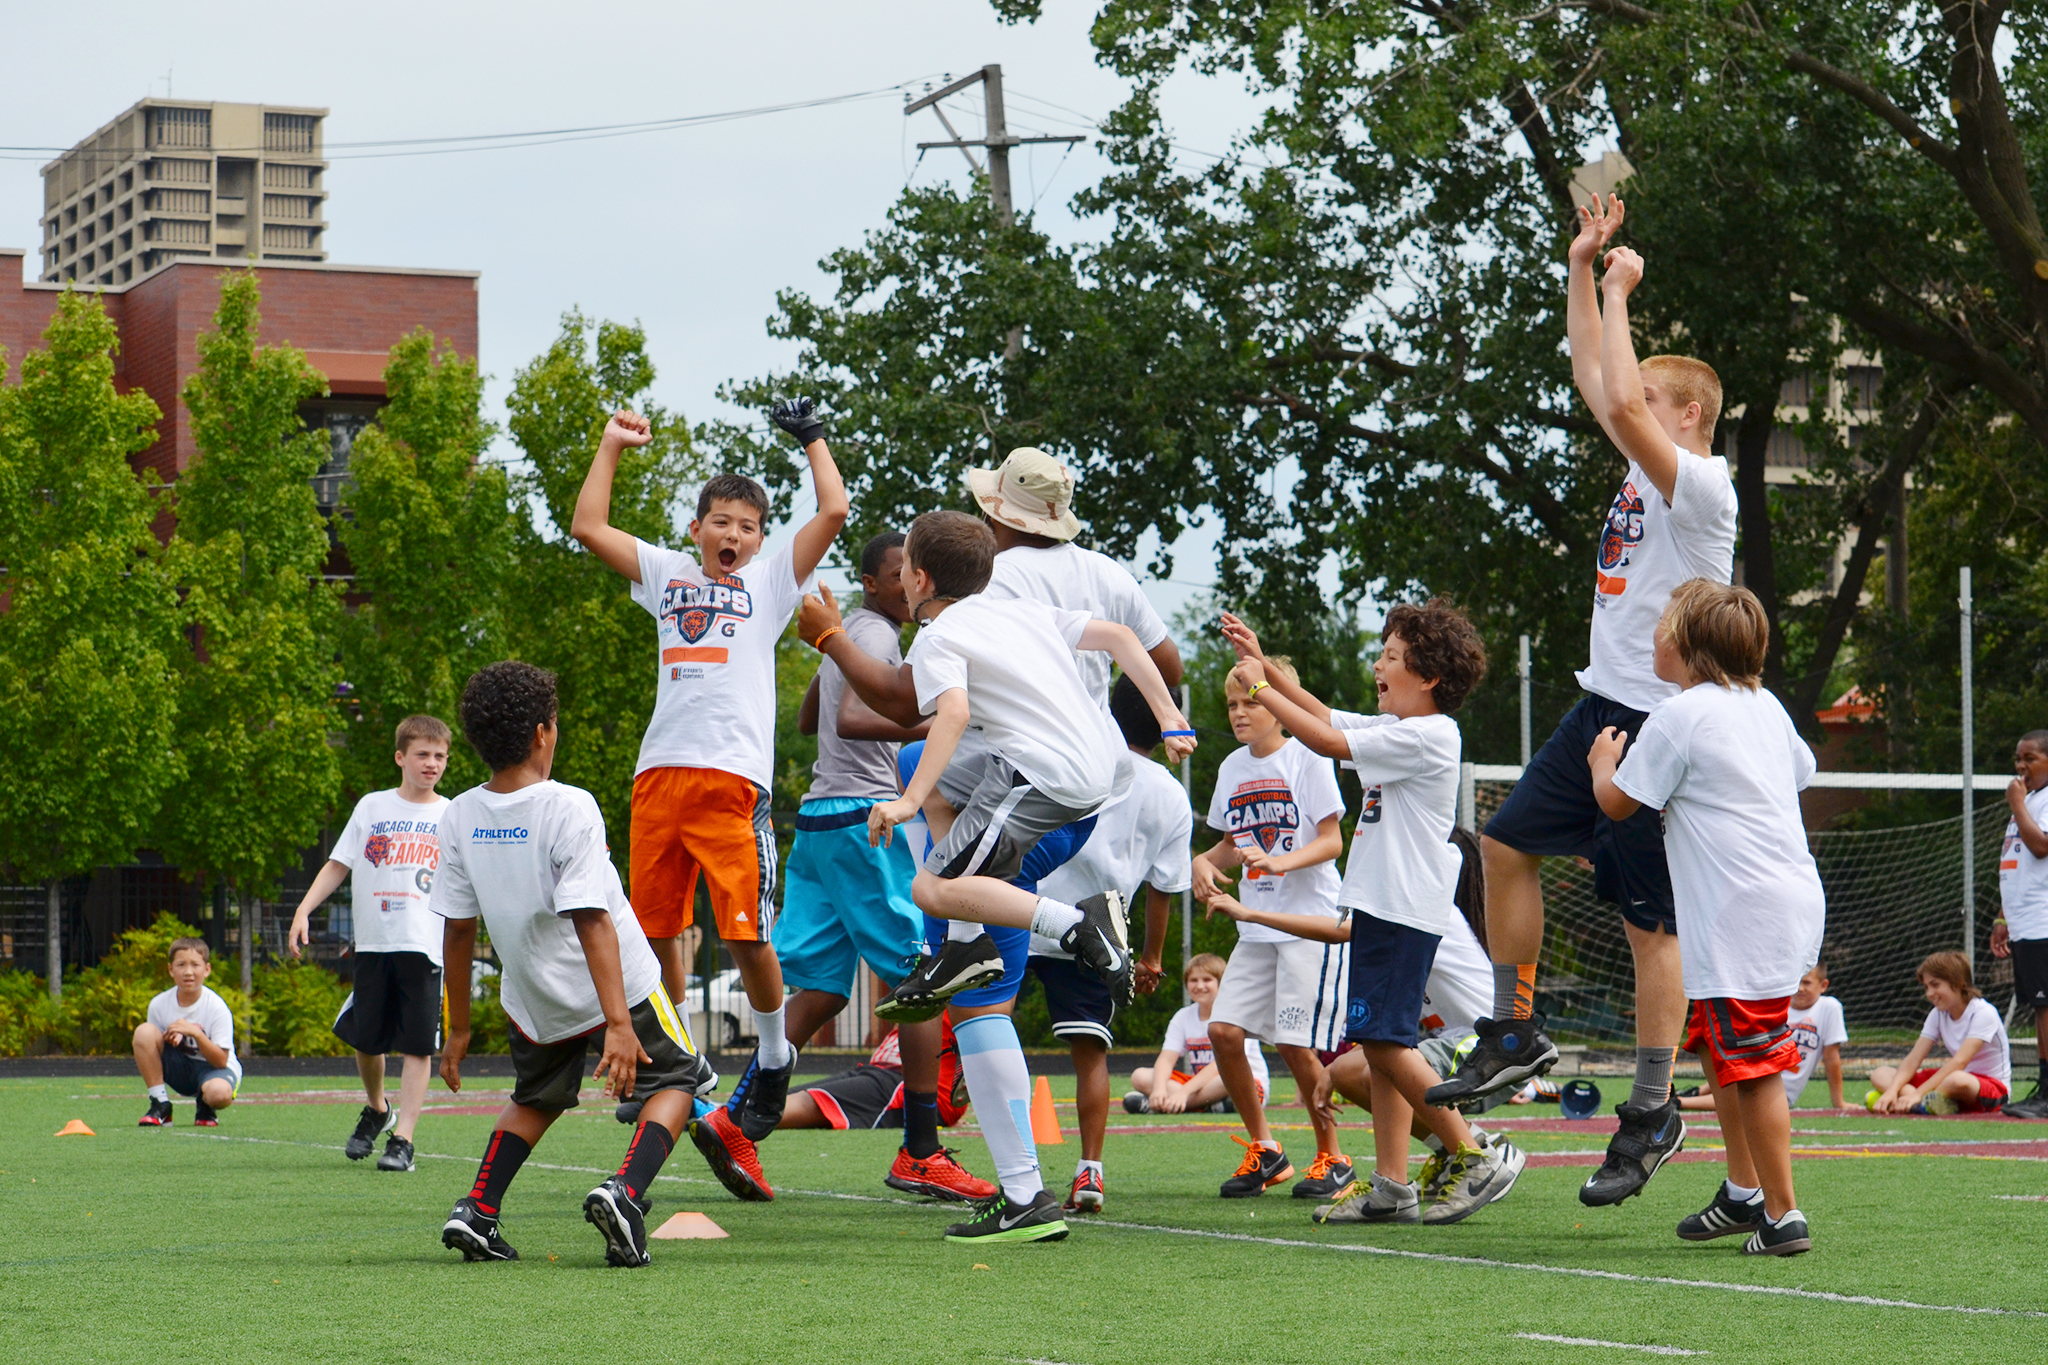 Summer Sports Kids: Summer Camps Guide To Kids' Day And Sleepaway Camps Near